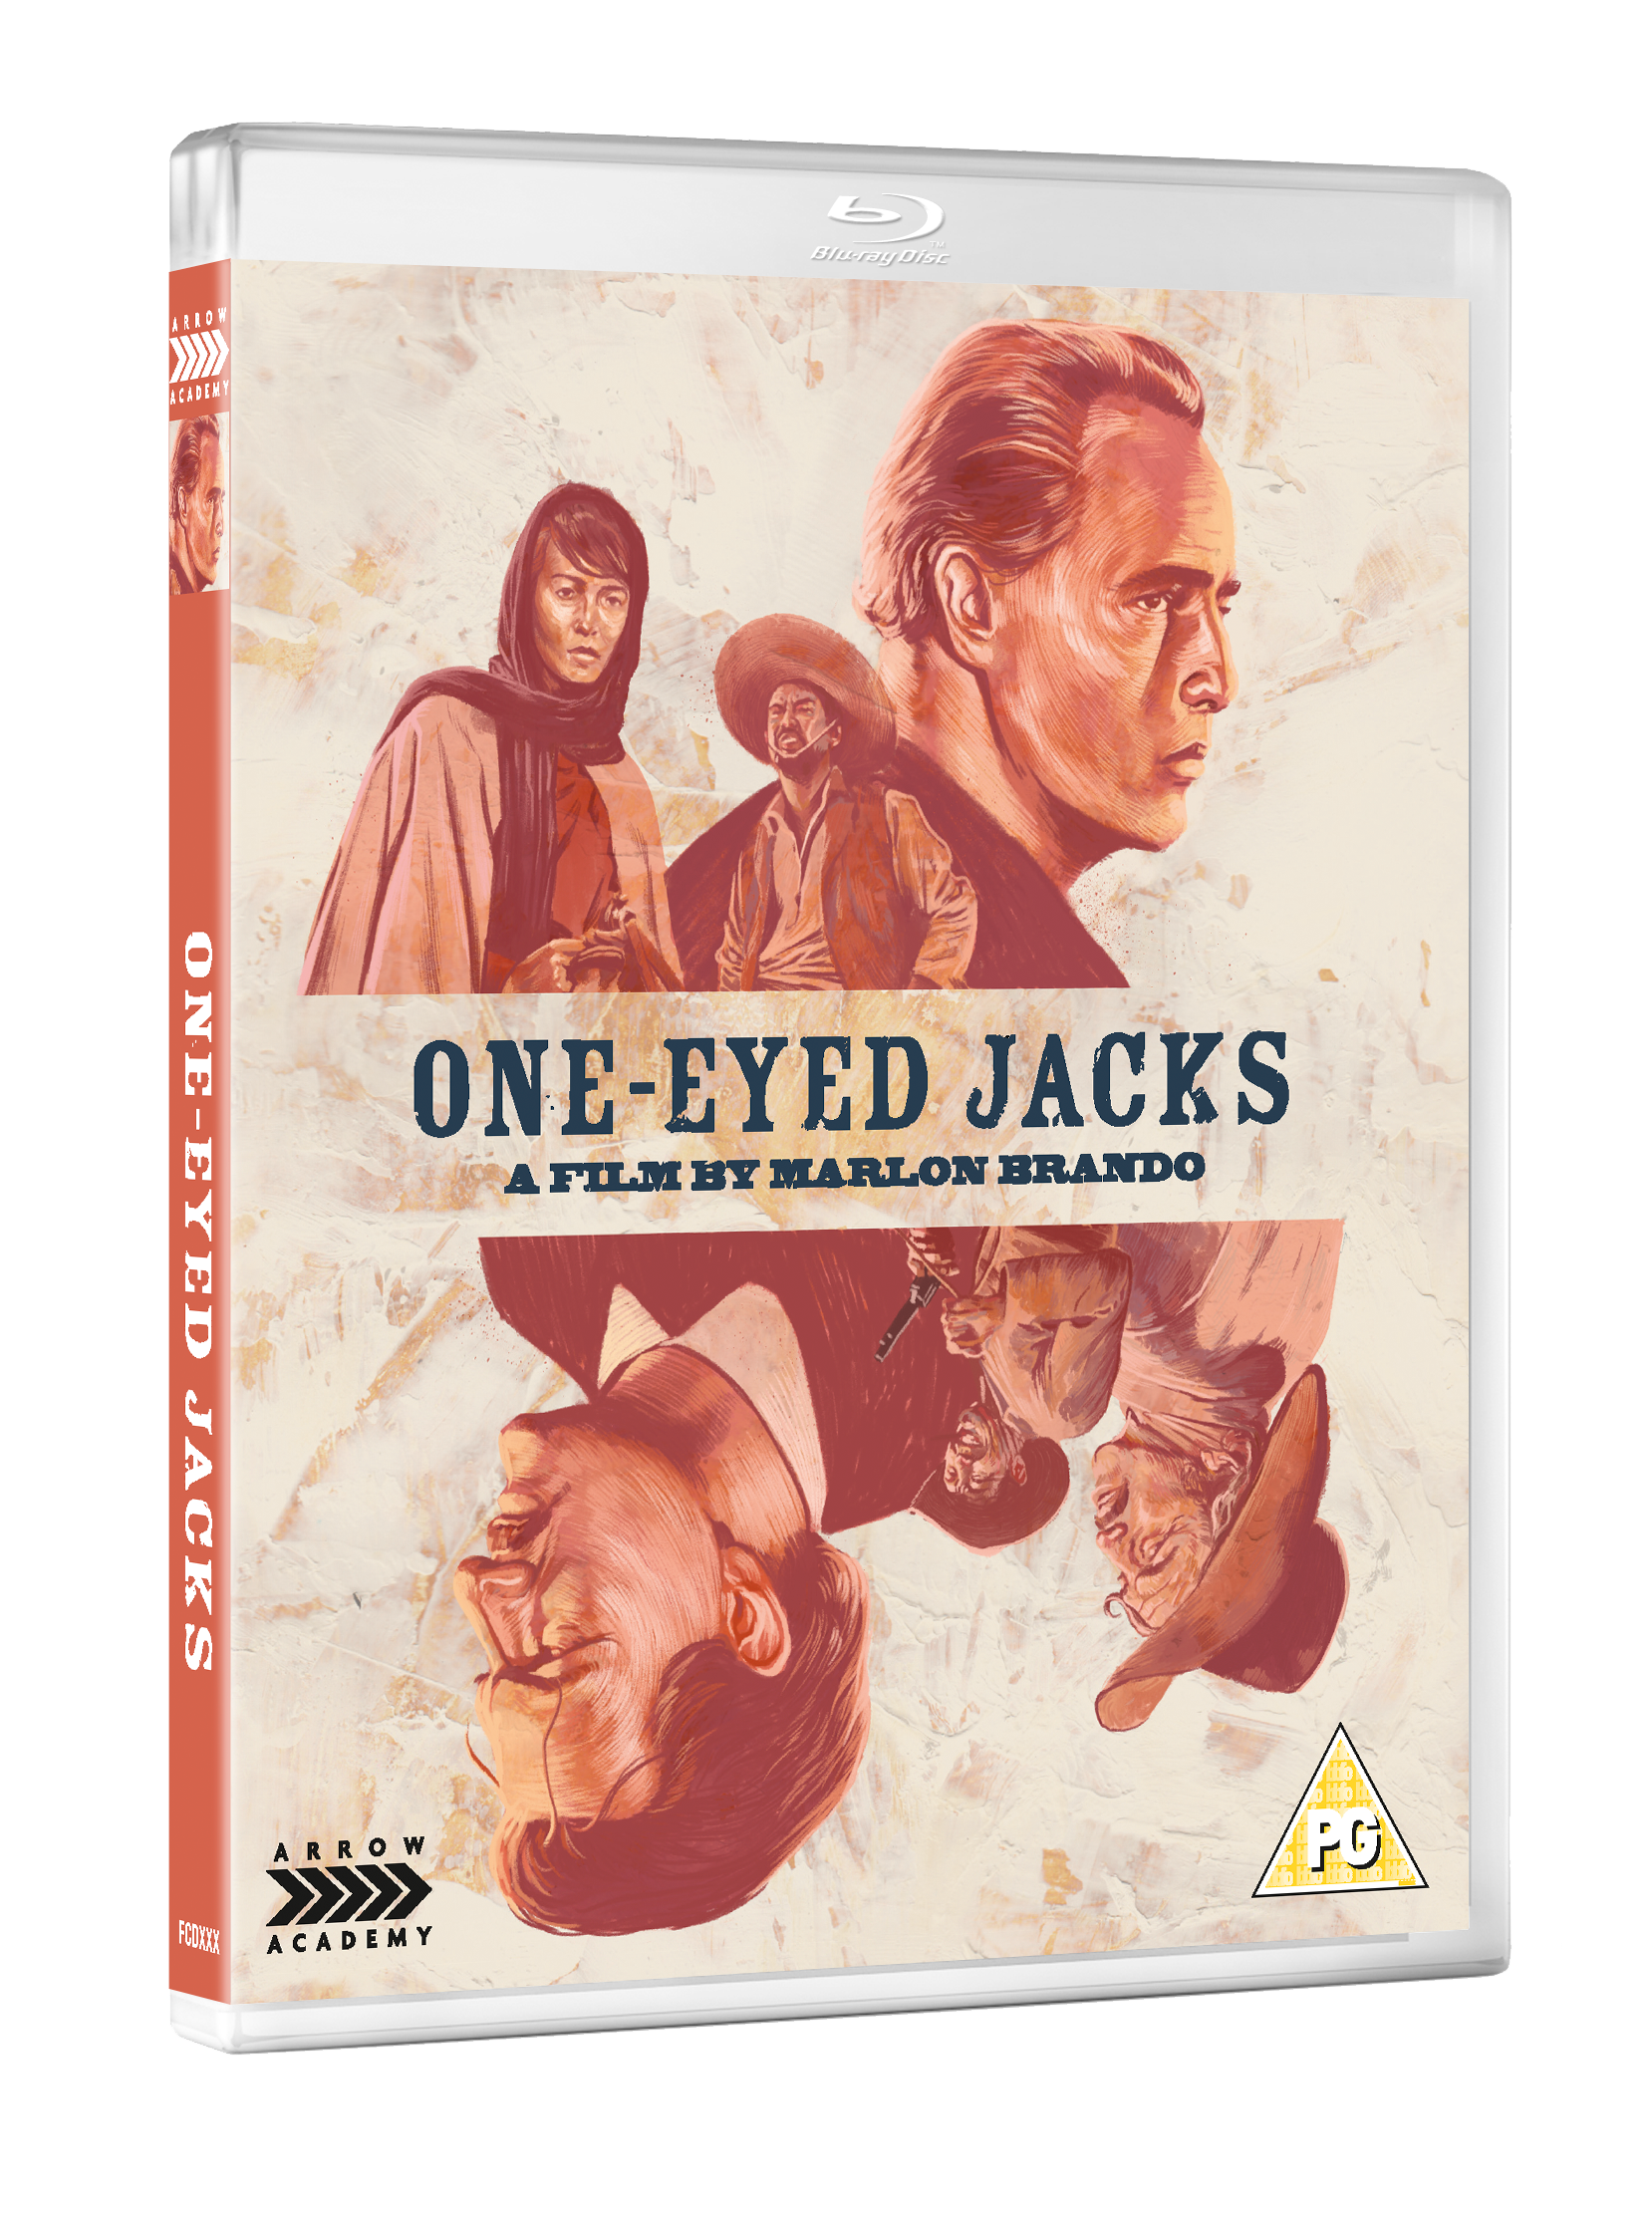 ONE EYED JACK 3D UK BD Arrow Academy June Line Up Announced